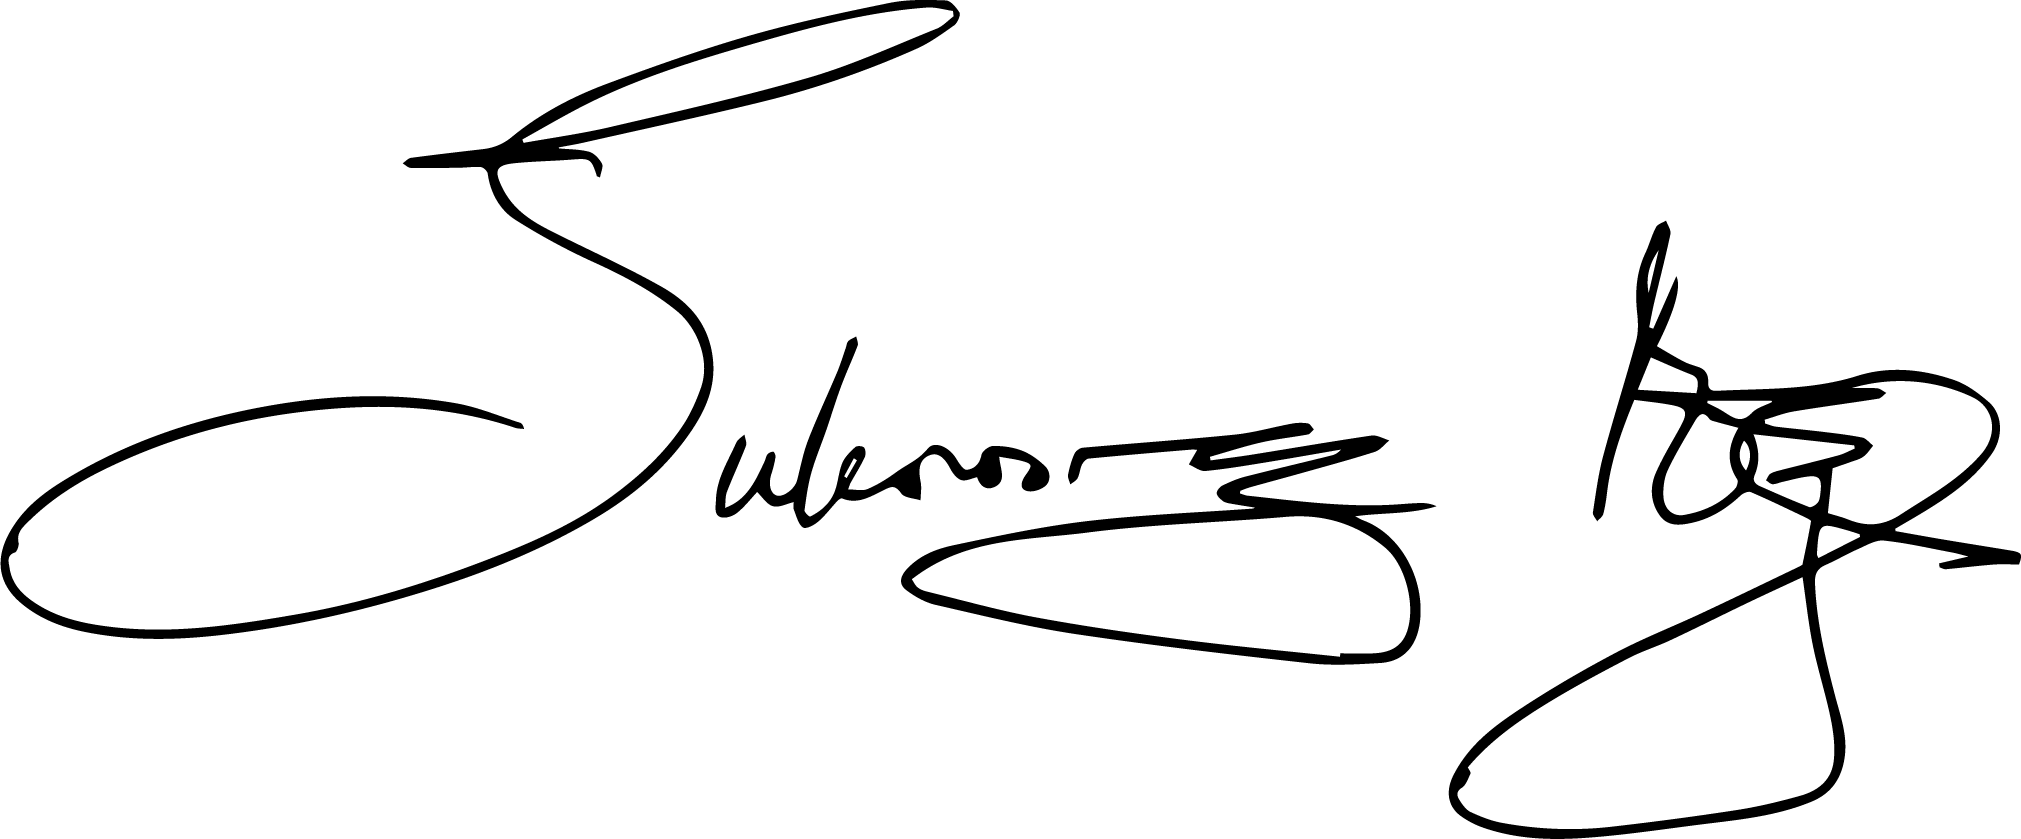 Tuku_Low_res_signiture.png